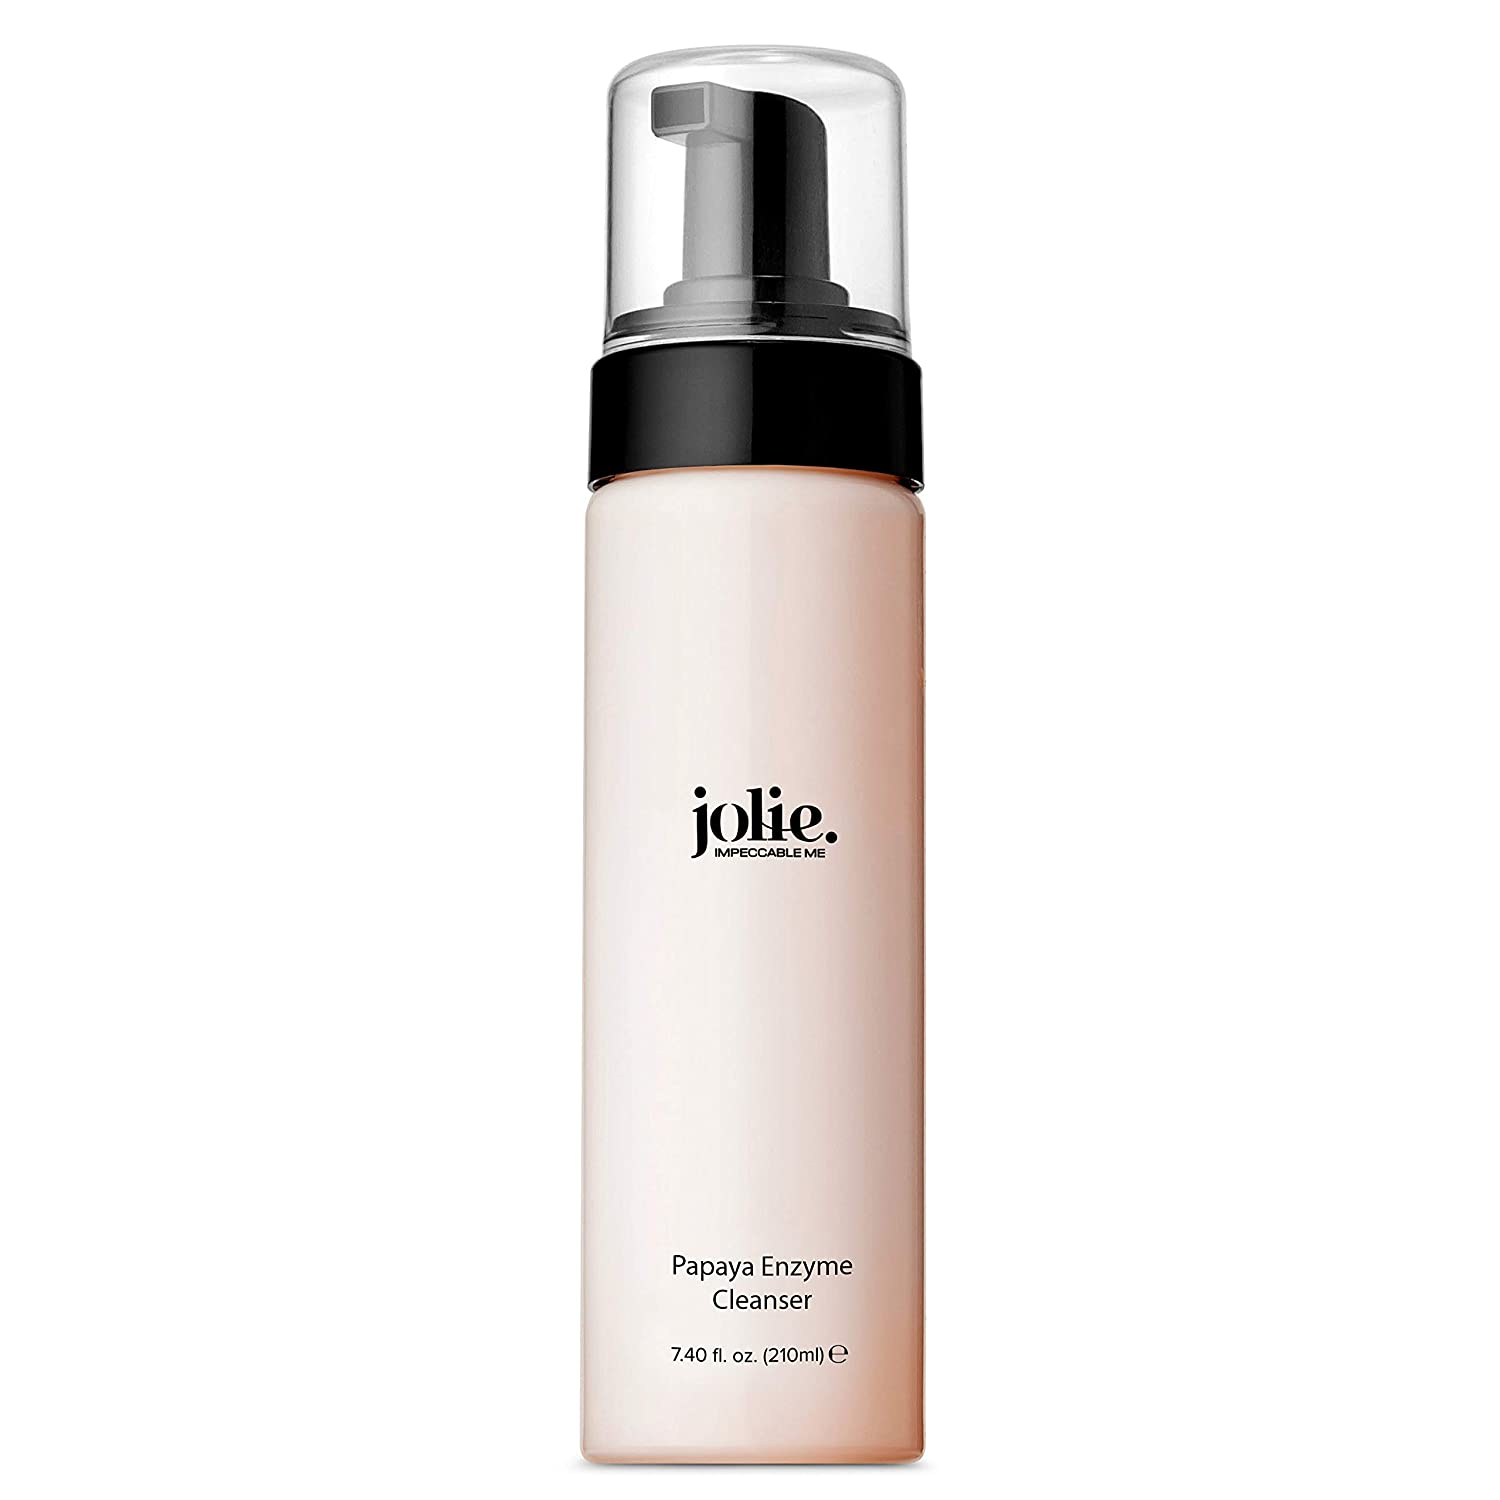 Jolie Papaya Enzyme Cleanser - Exfoliating Gentle Foaming Face Wash, Made with Natural Fruit Extract leaves - Papain, Cucumber & Sage - 7 oz.